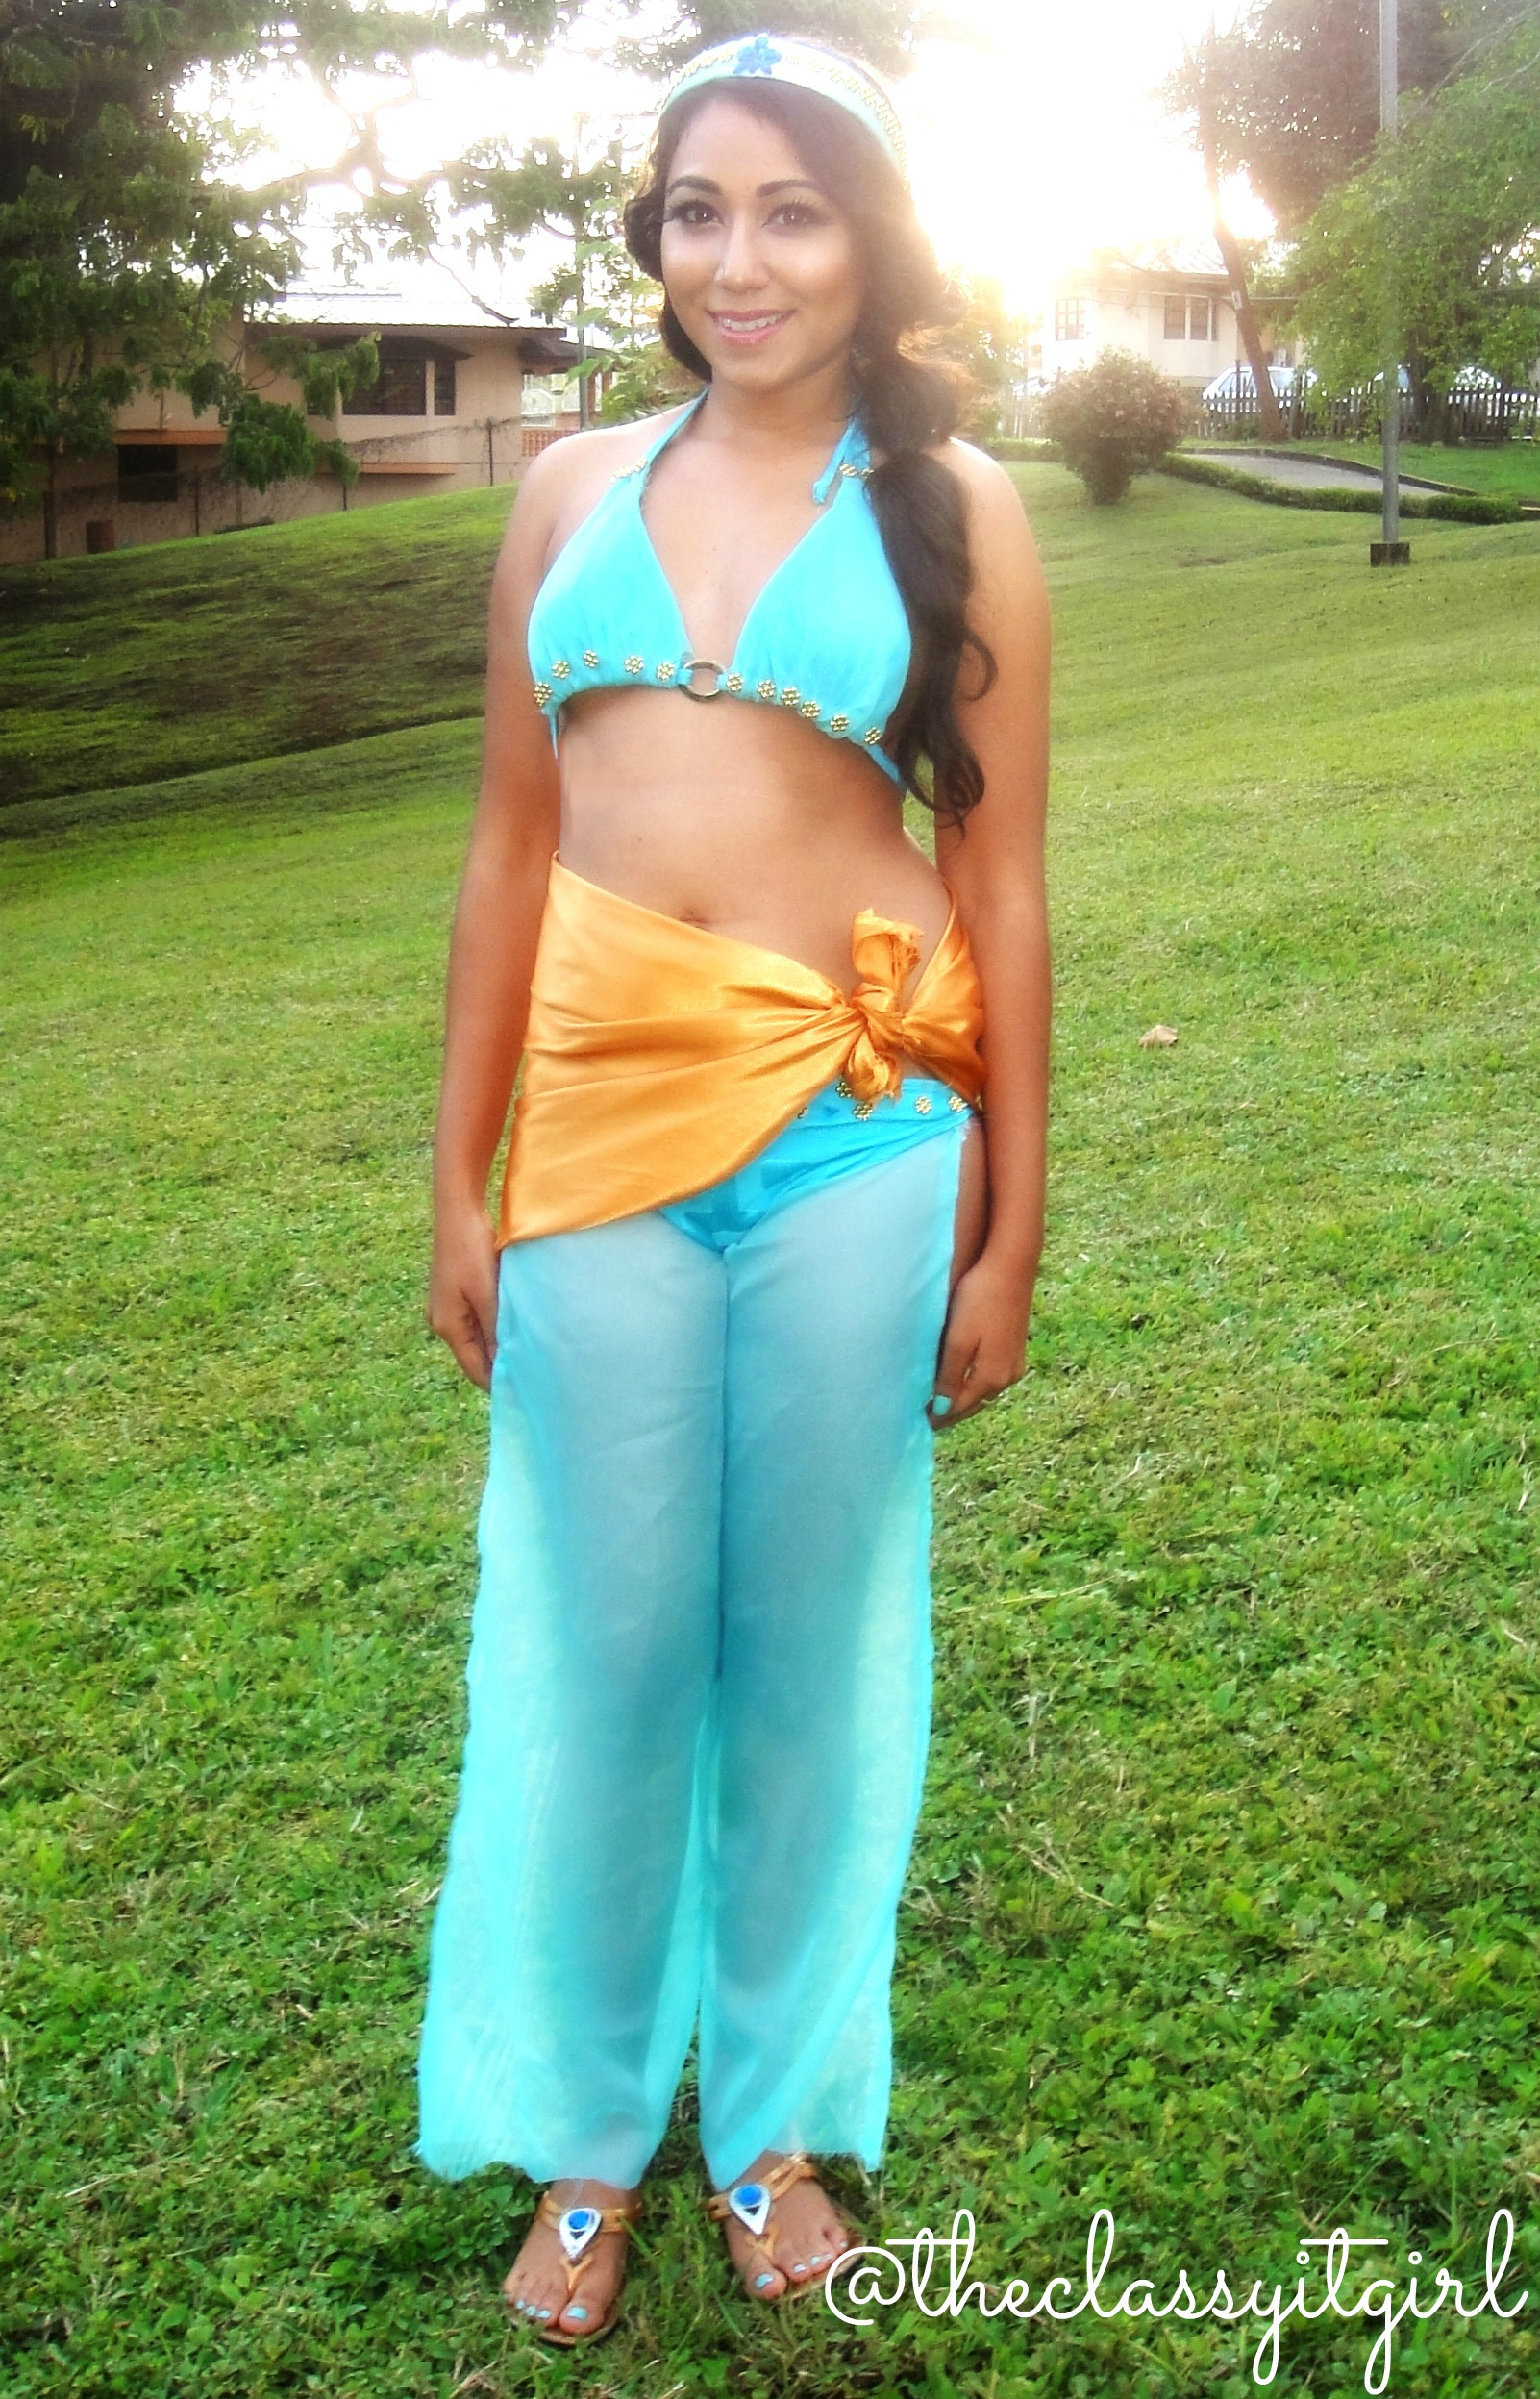 Jasmine12  sc 1 st  Roxy James & Princess Jasmine DIY No Sew Outfit u0026 Makeup - Roxy James